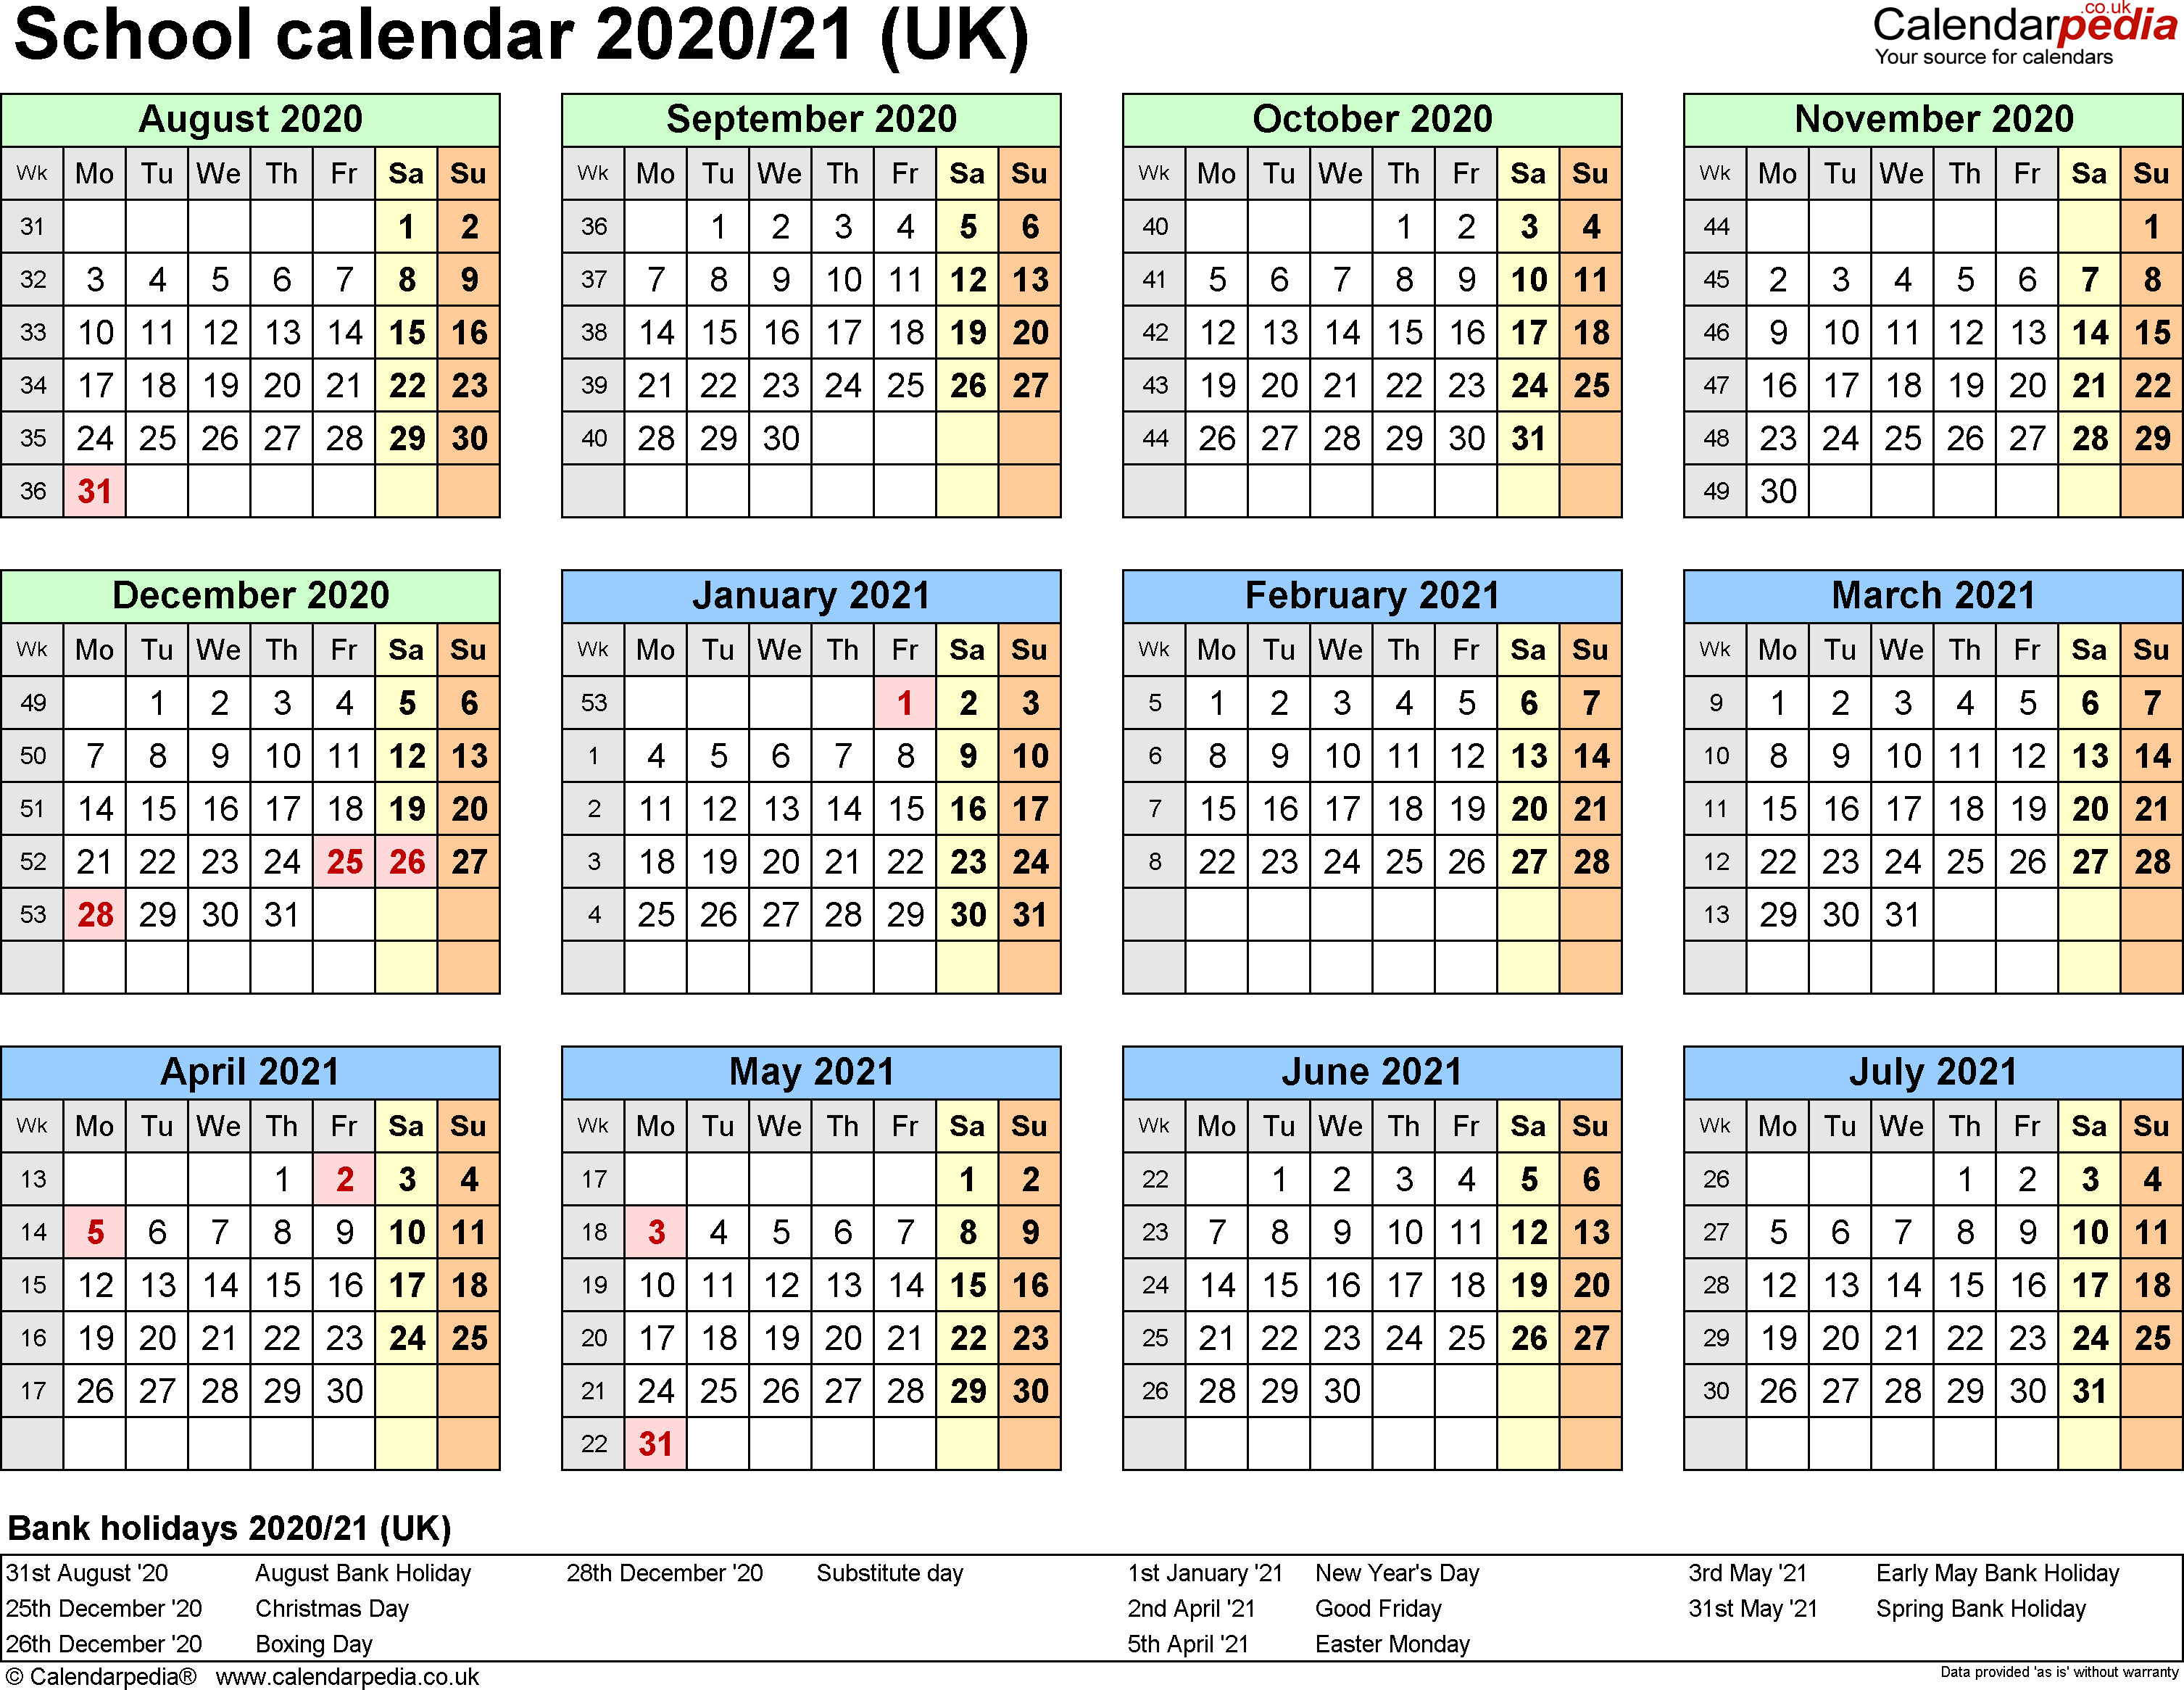 School Calendars 2020/2021 As Free Printable Excel Templates